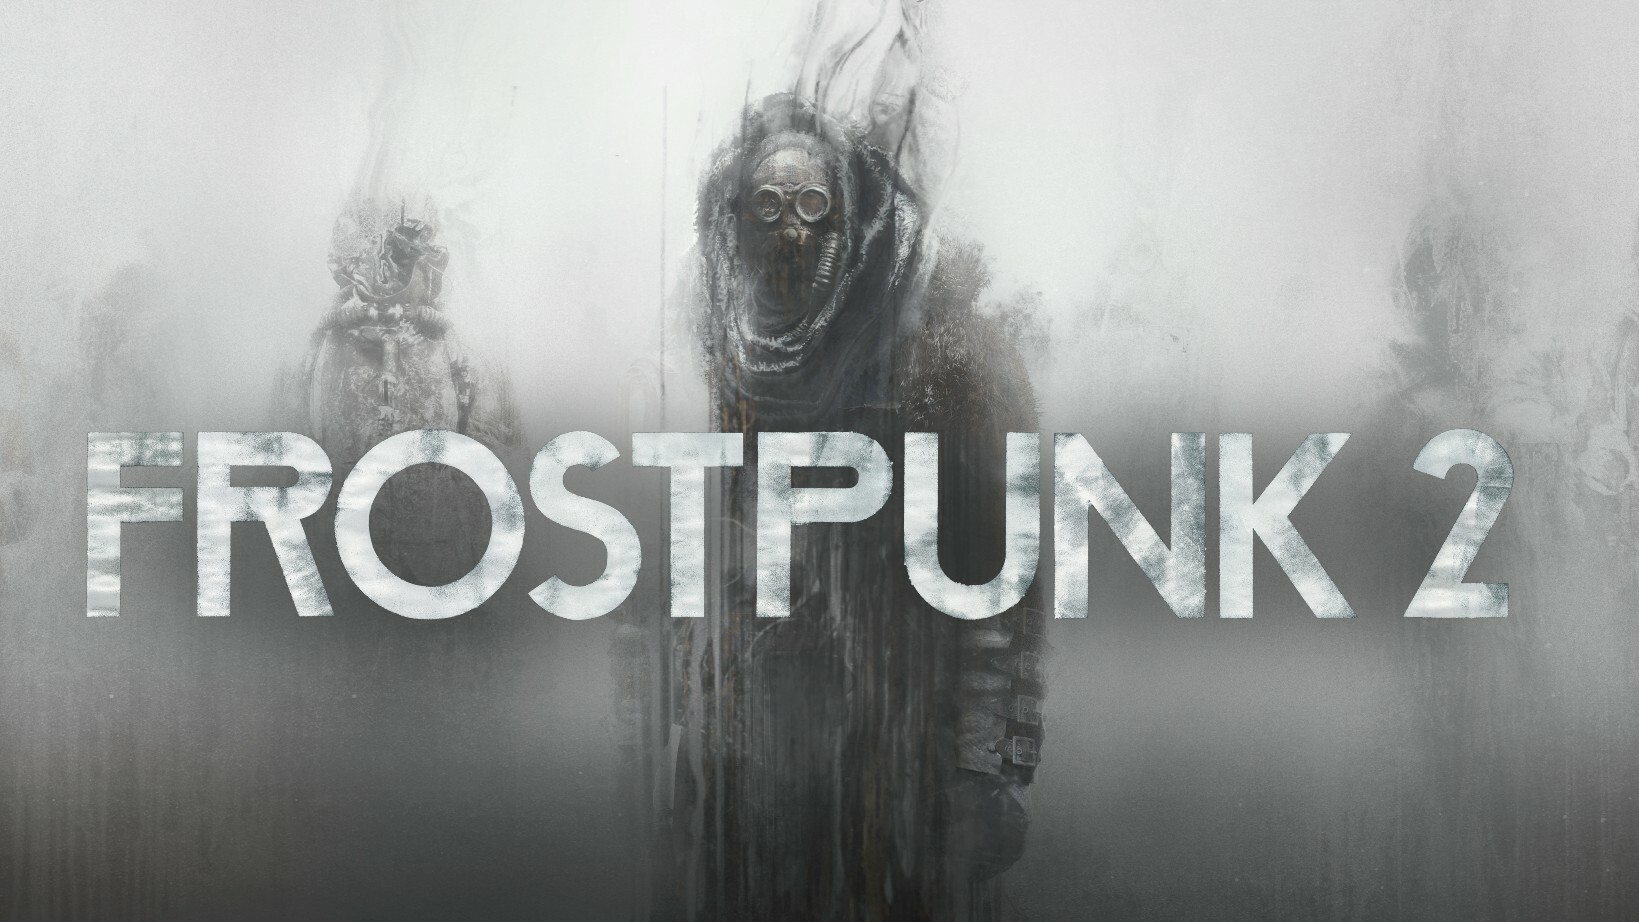 Frostpunk 2 Announcement Trailer: Looks to Introduce A Bloody New Age of Oil Into The Frostlands